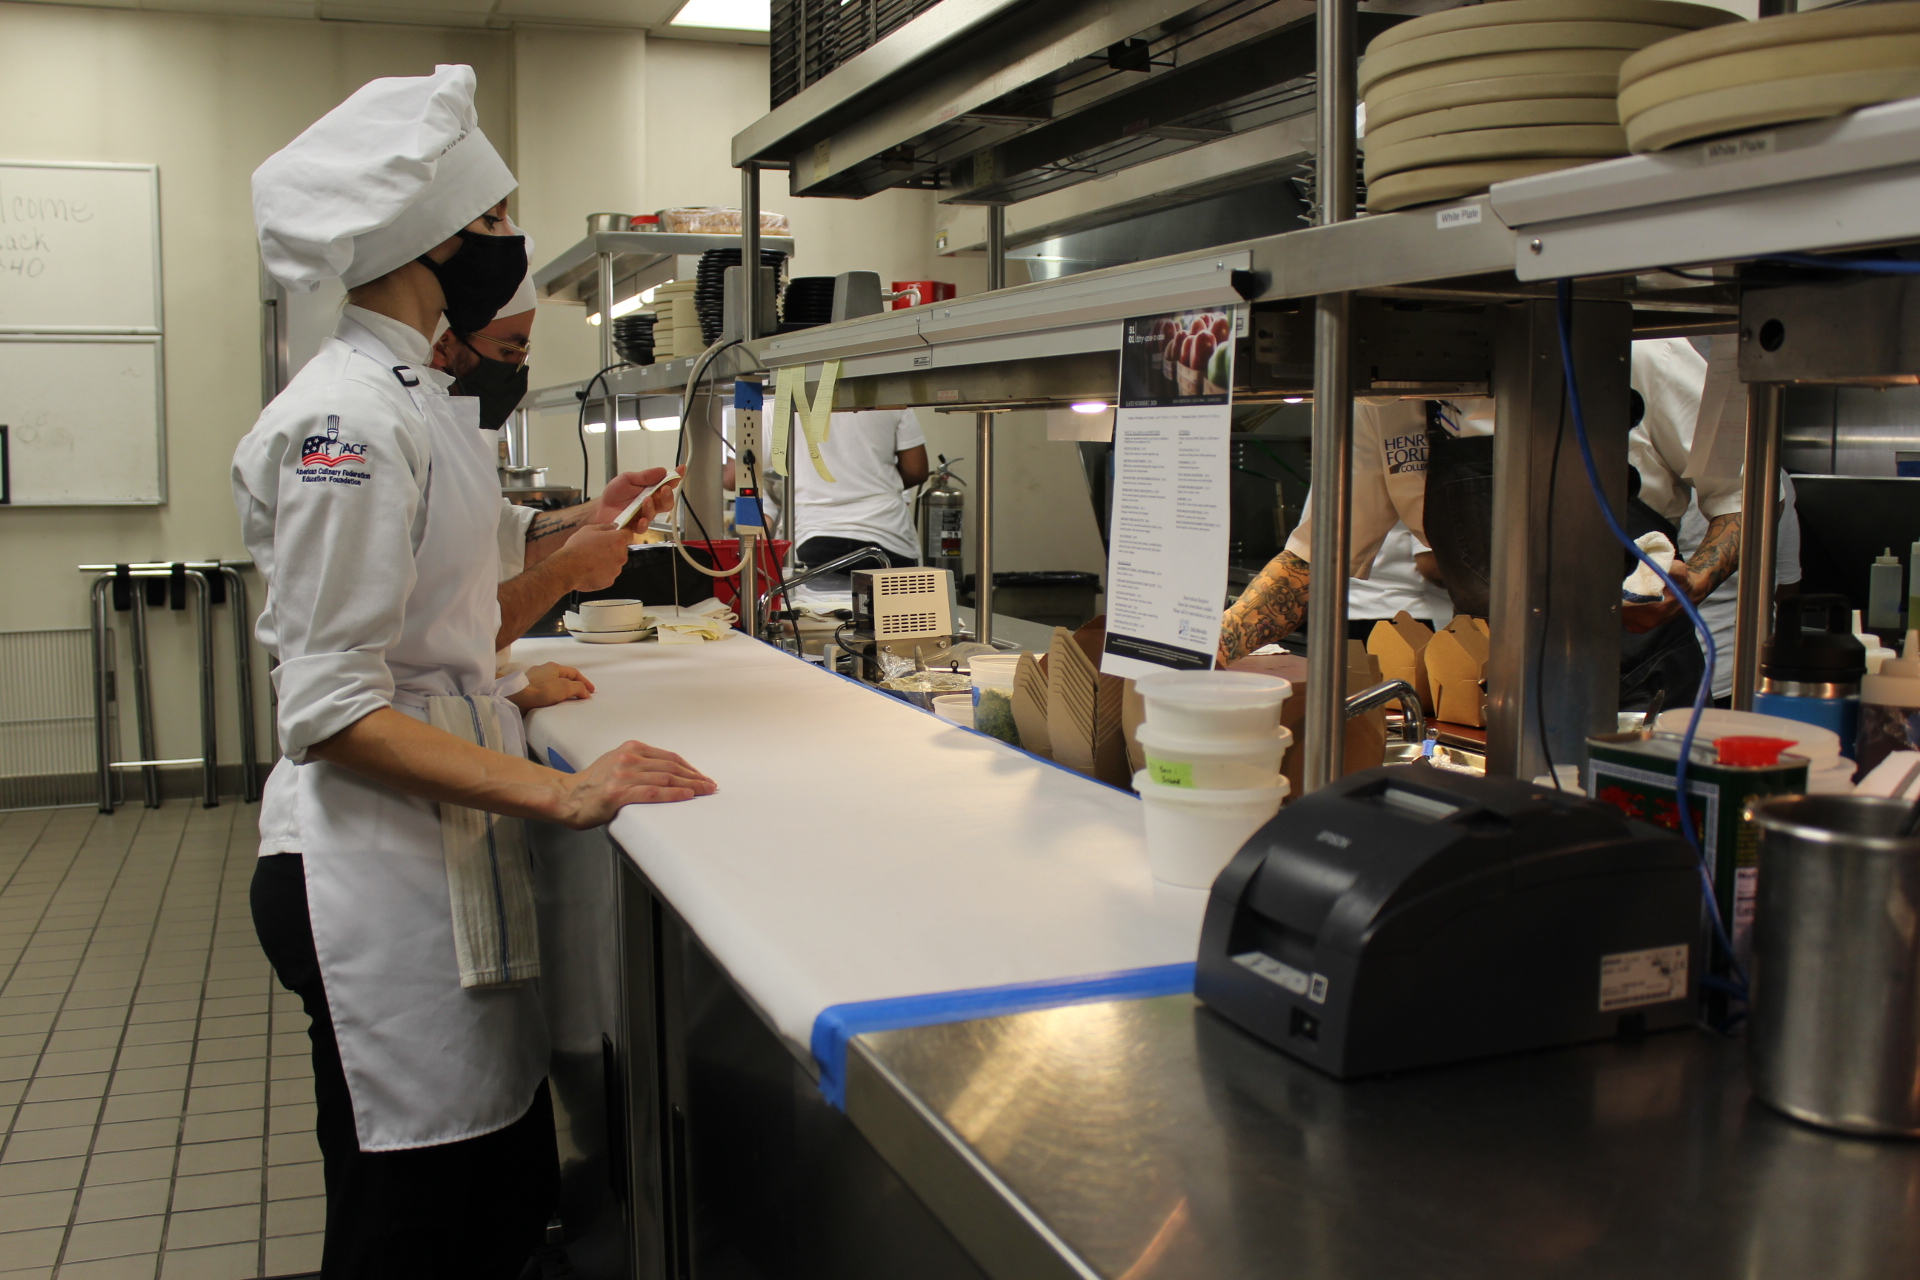 Culinary arts students in Fifty-One O One kitchen this month photo by Muna Saleh